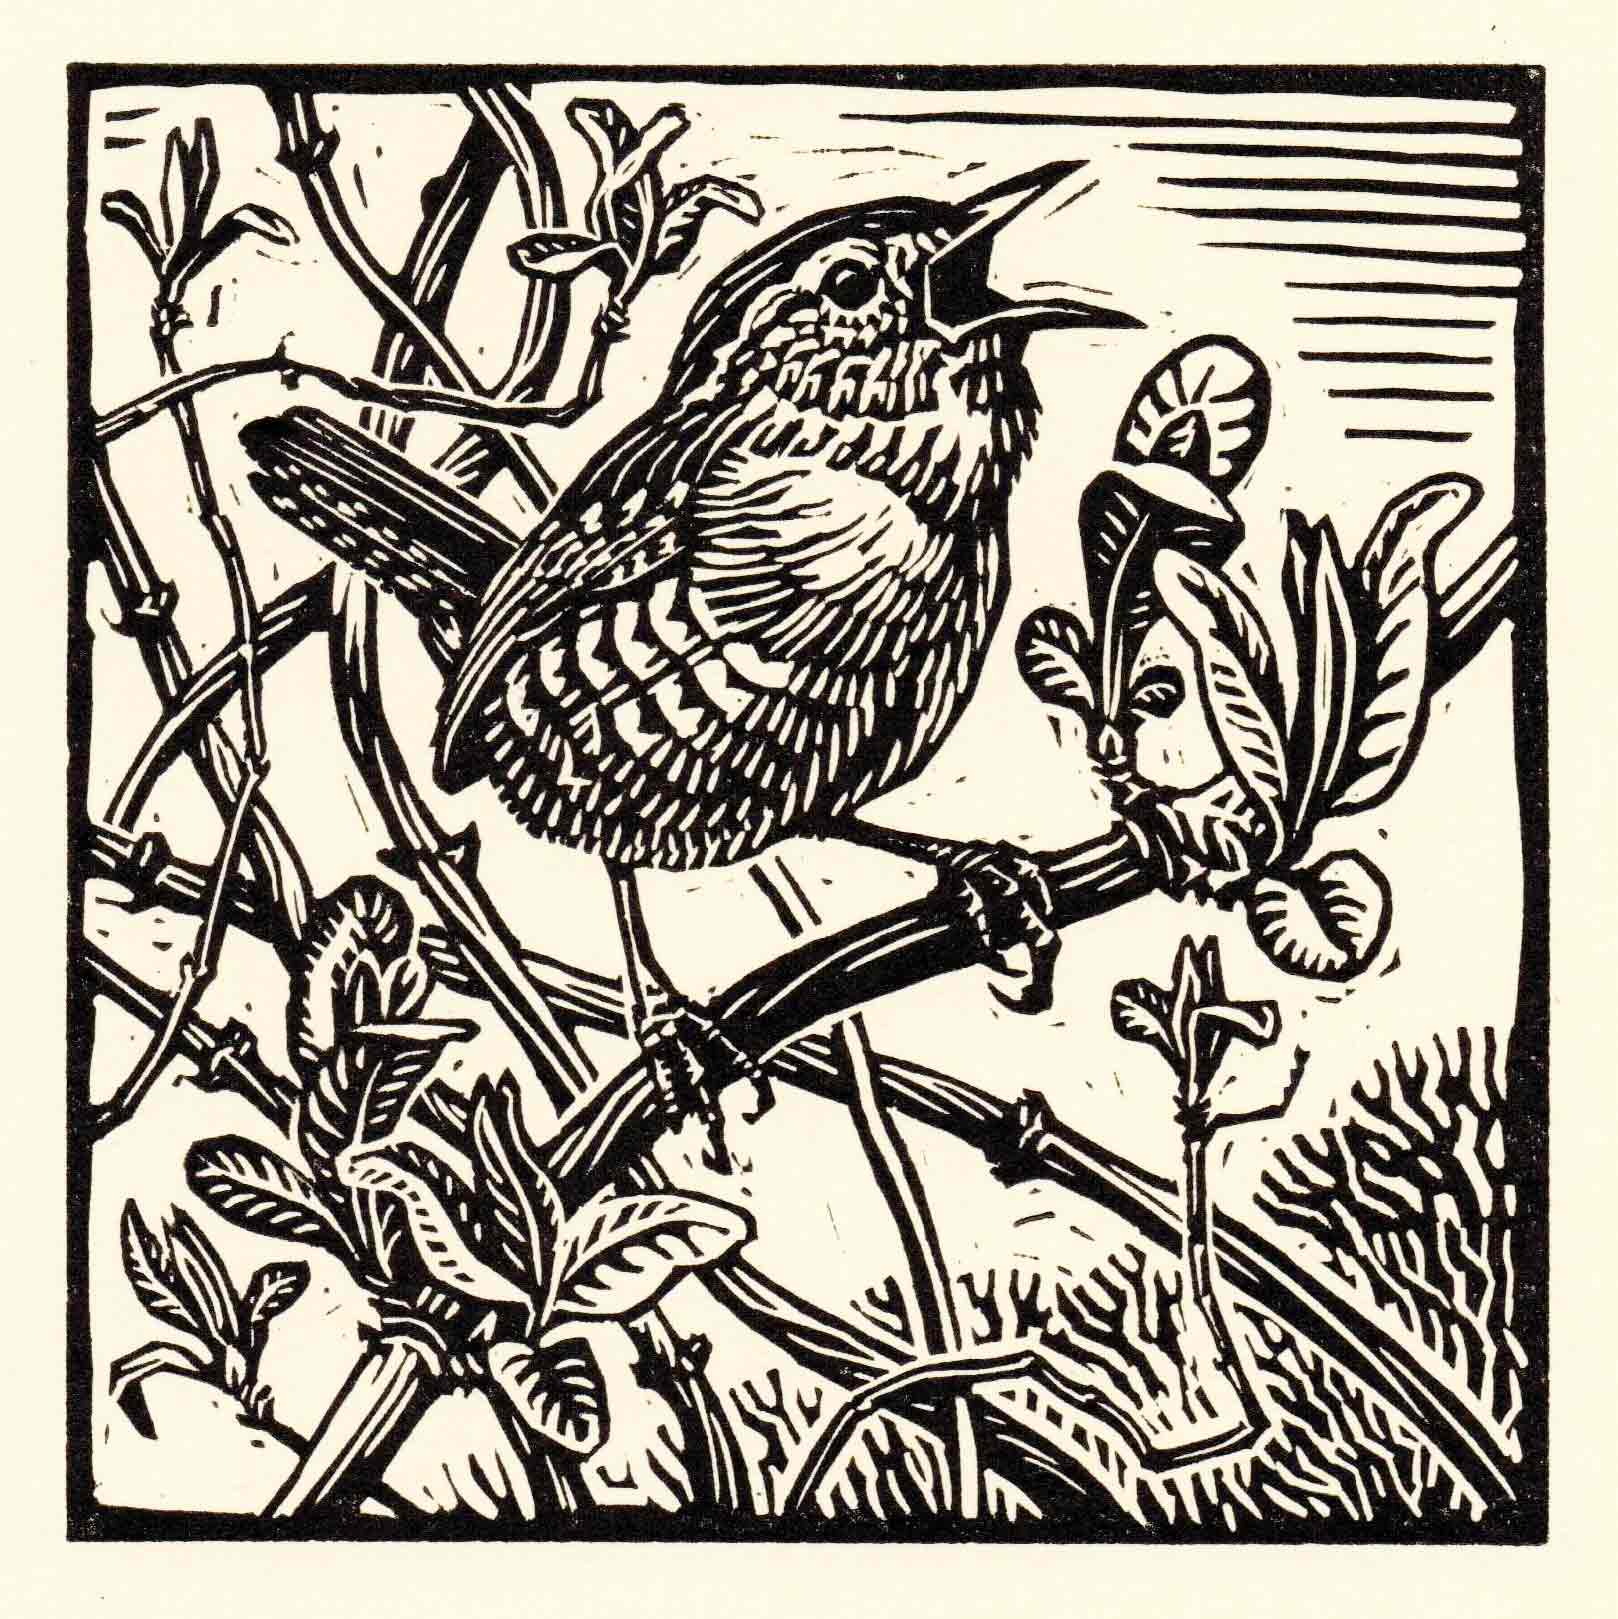 Art Greeting Card by Richard Allen, Wren, Linocut, Wren singing on branch